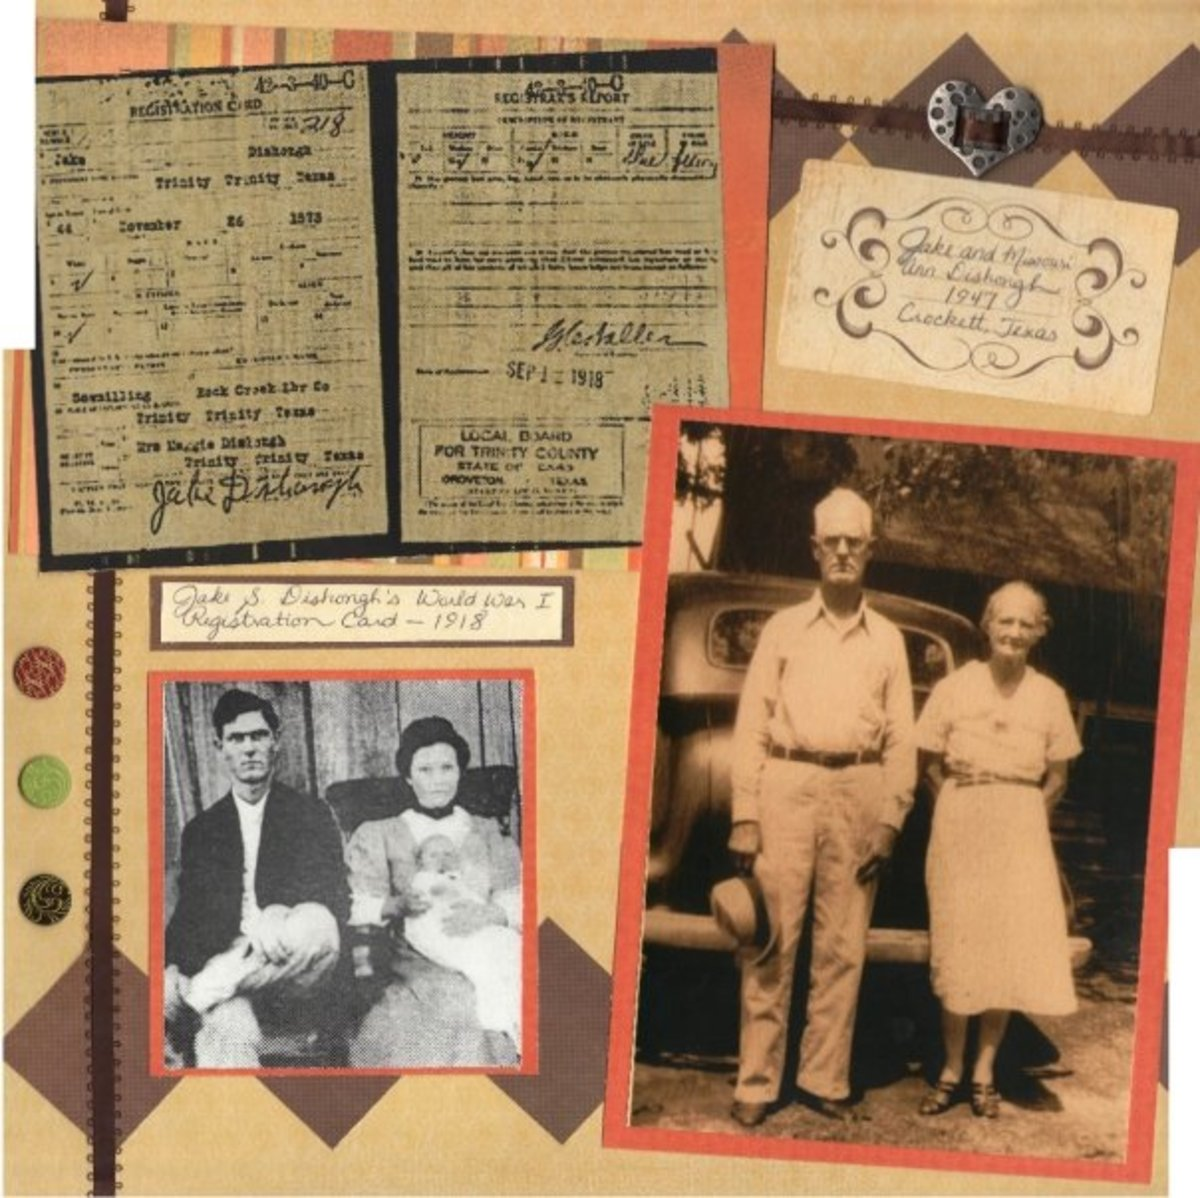 Embellishments were added to fill space, but also to pull your eye to other pieces on the page. Scrapbooks tell a story, and you want your reader to pick up as many details as possible.